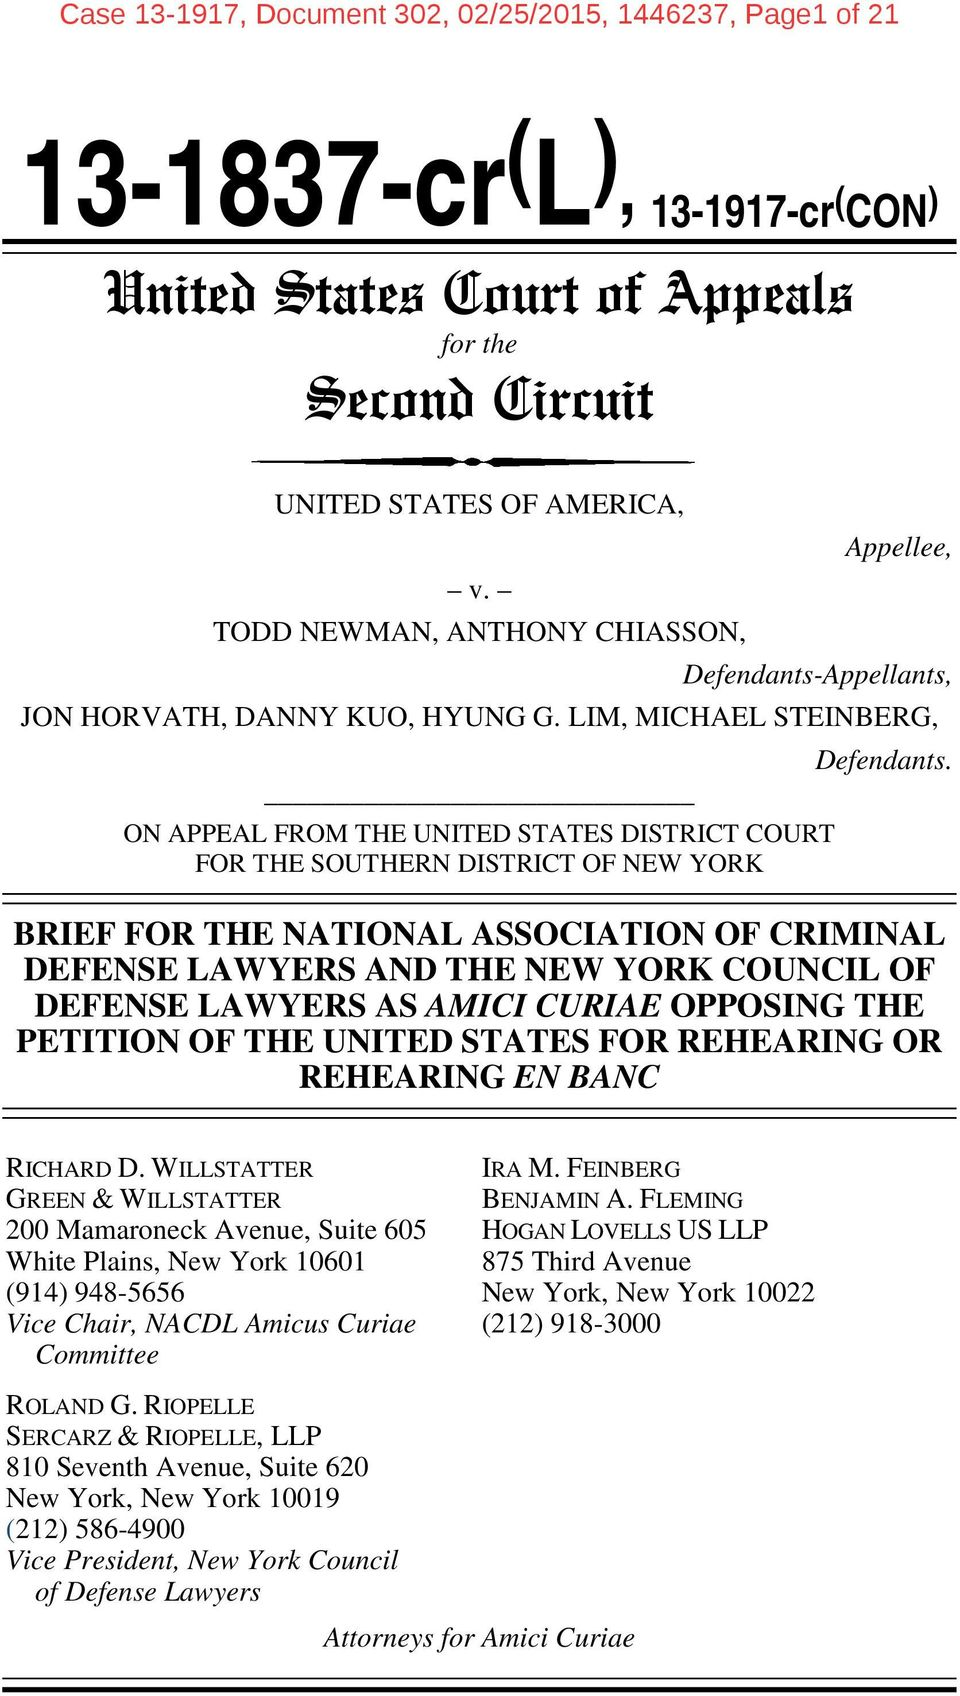 LIM, MICHAEL STEINBERG, ON APPEAL FROM THE UNITED STATES DISTRICT COURT FOR THE SOUTHERN DISTRICT OF NEW YORK Defendants.